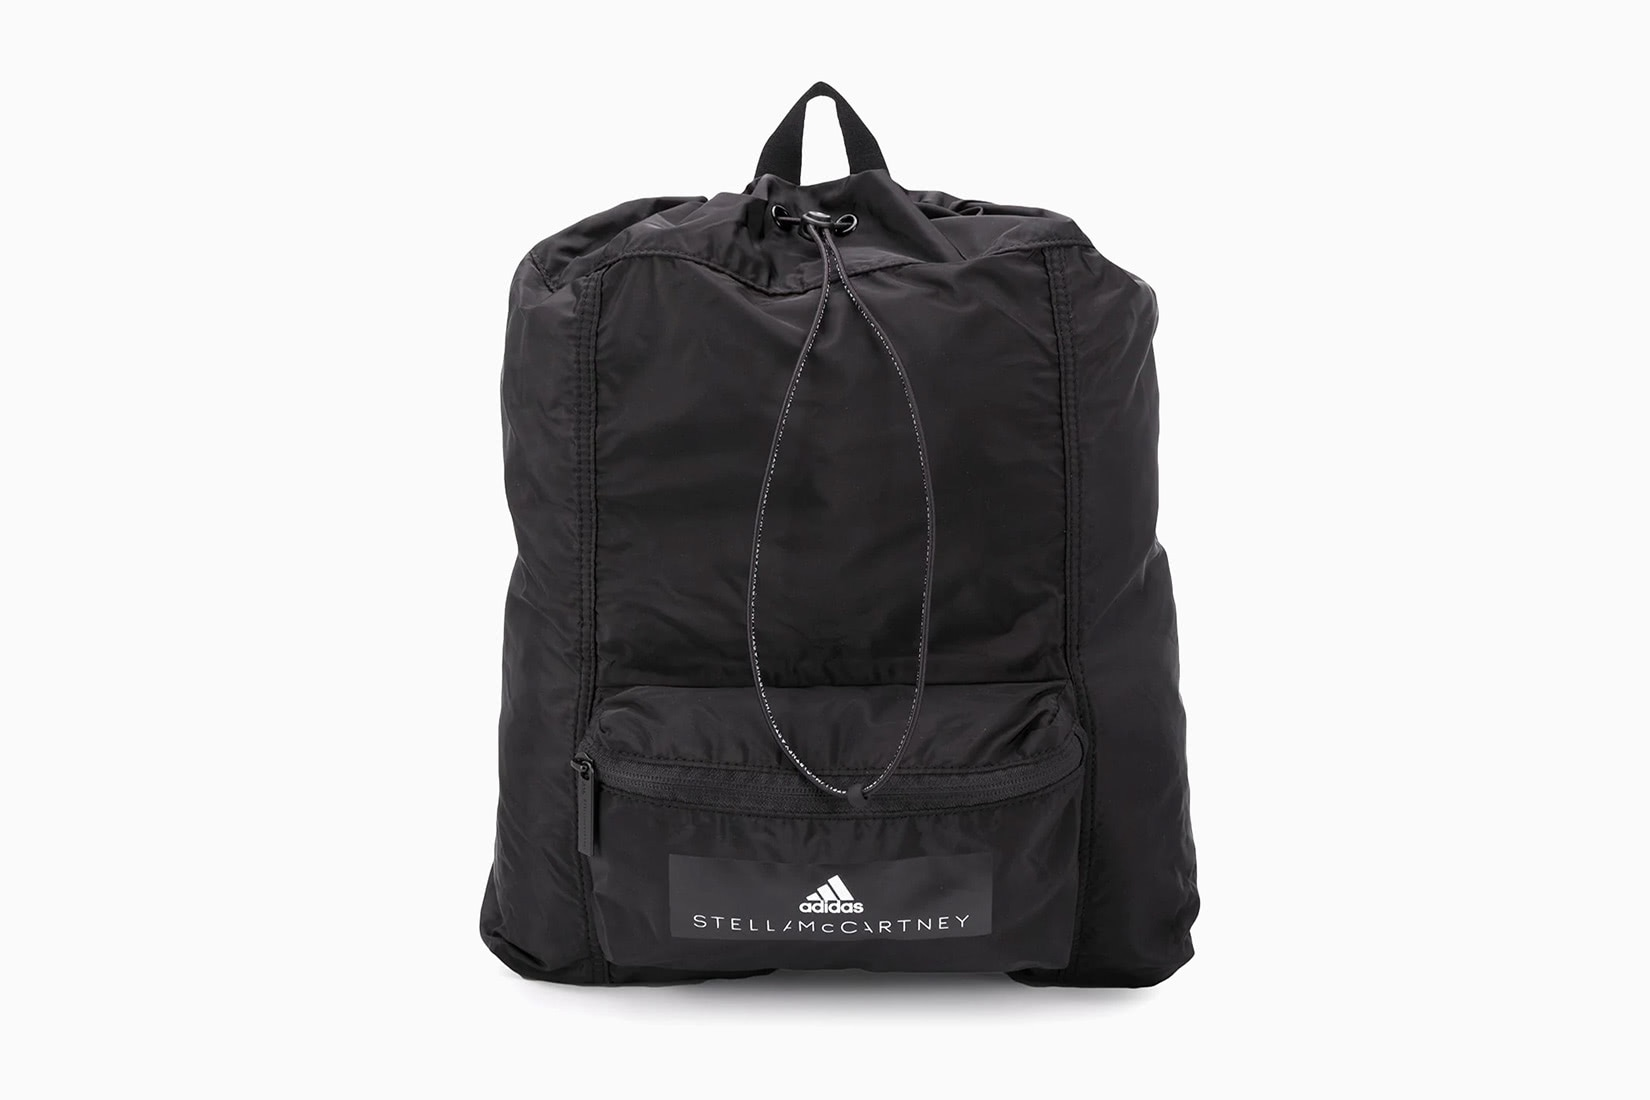 best women gym bag small backpack adidas stella mccartney - Luxe Digital